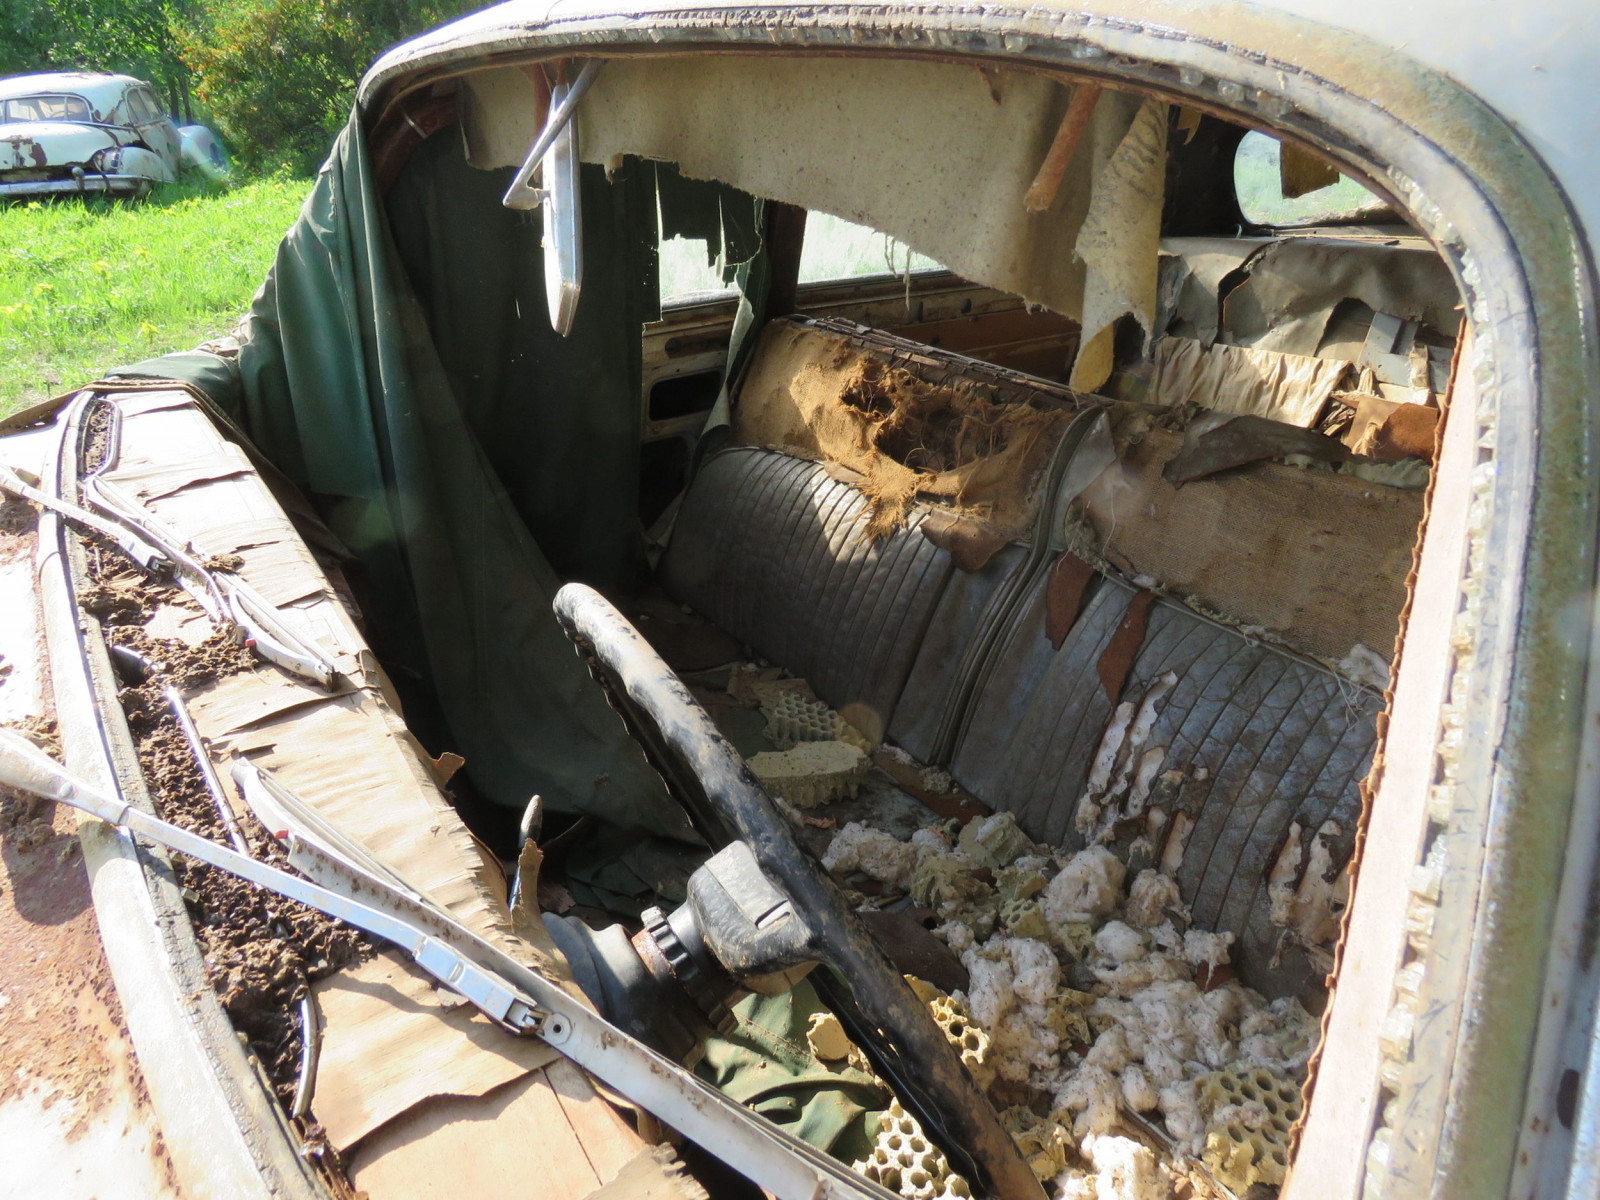 1965 Jaguar Mark X 4dr Sedan Project - Image 5